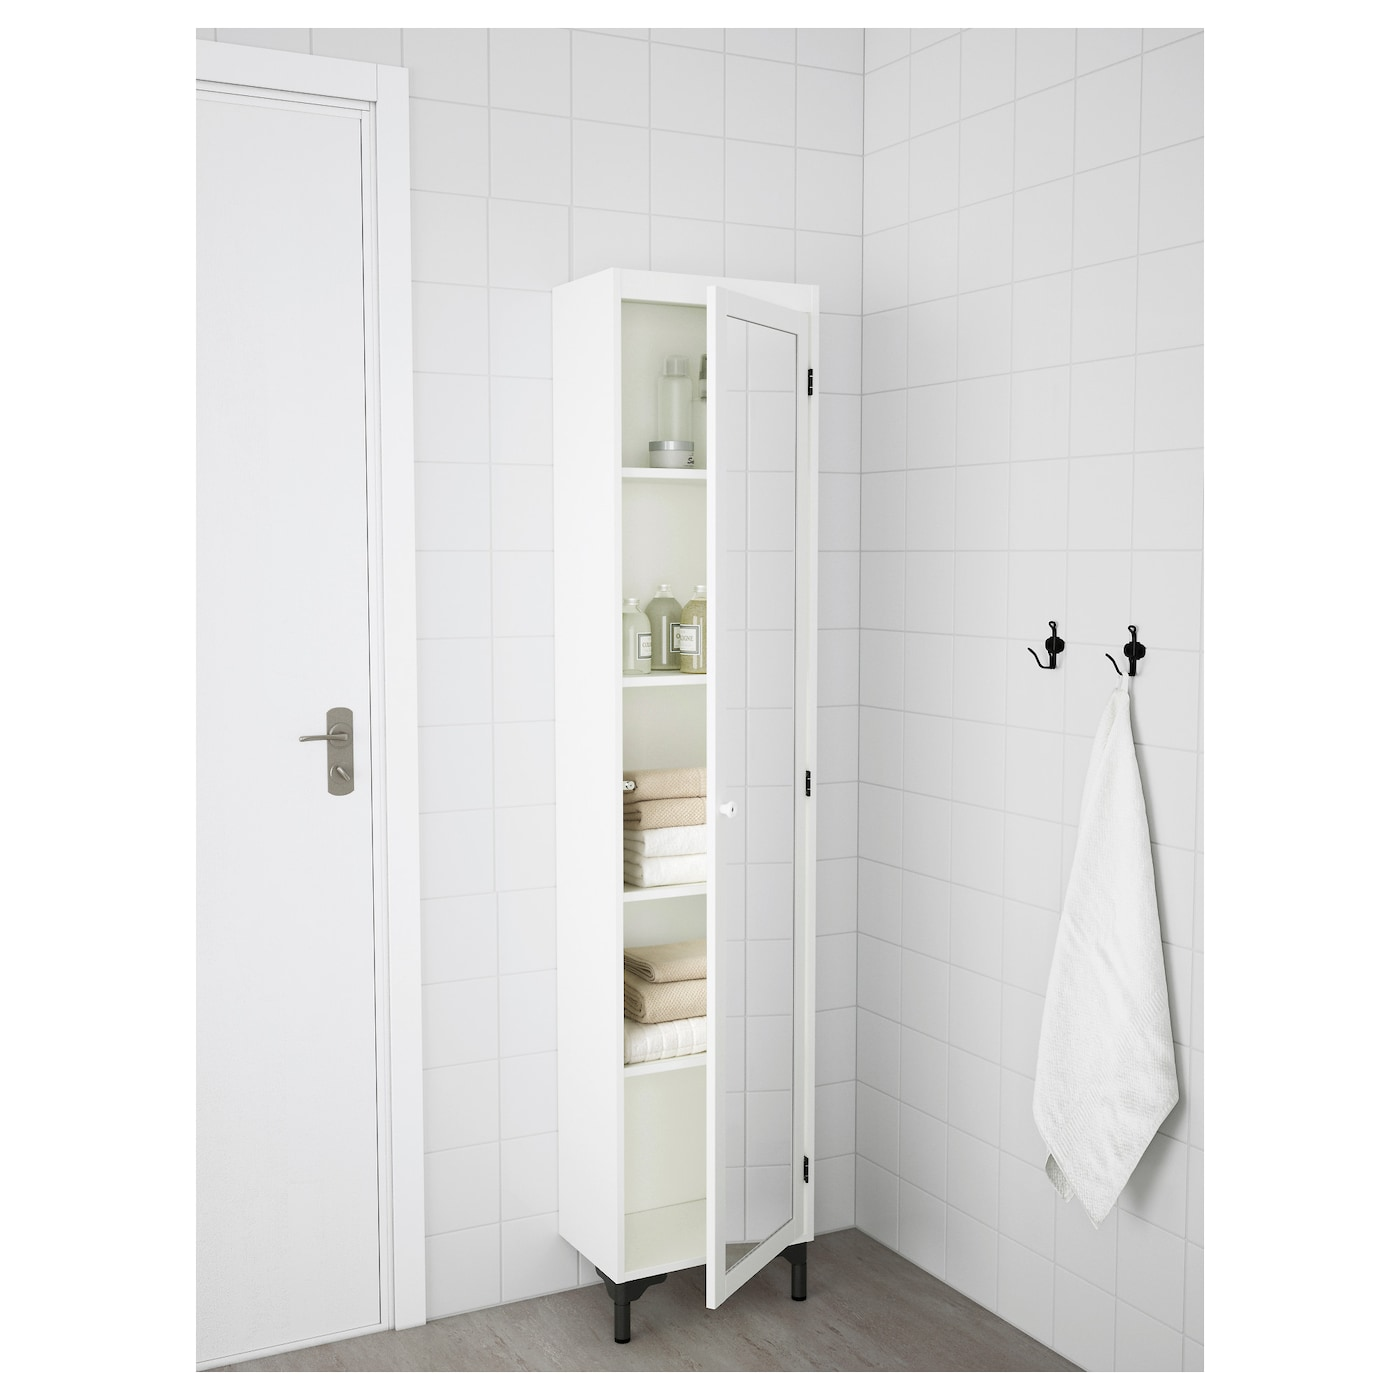 Bathroom Mirror Door silverÅn high cabinet with mirror door white 40x25x172 cm - ikea